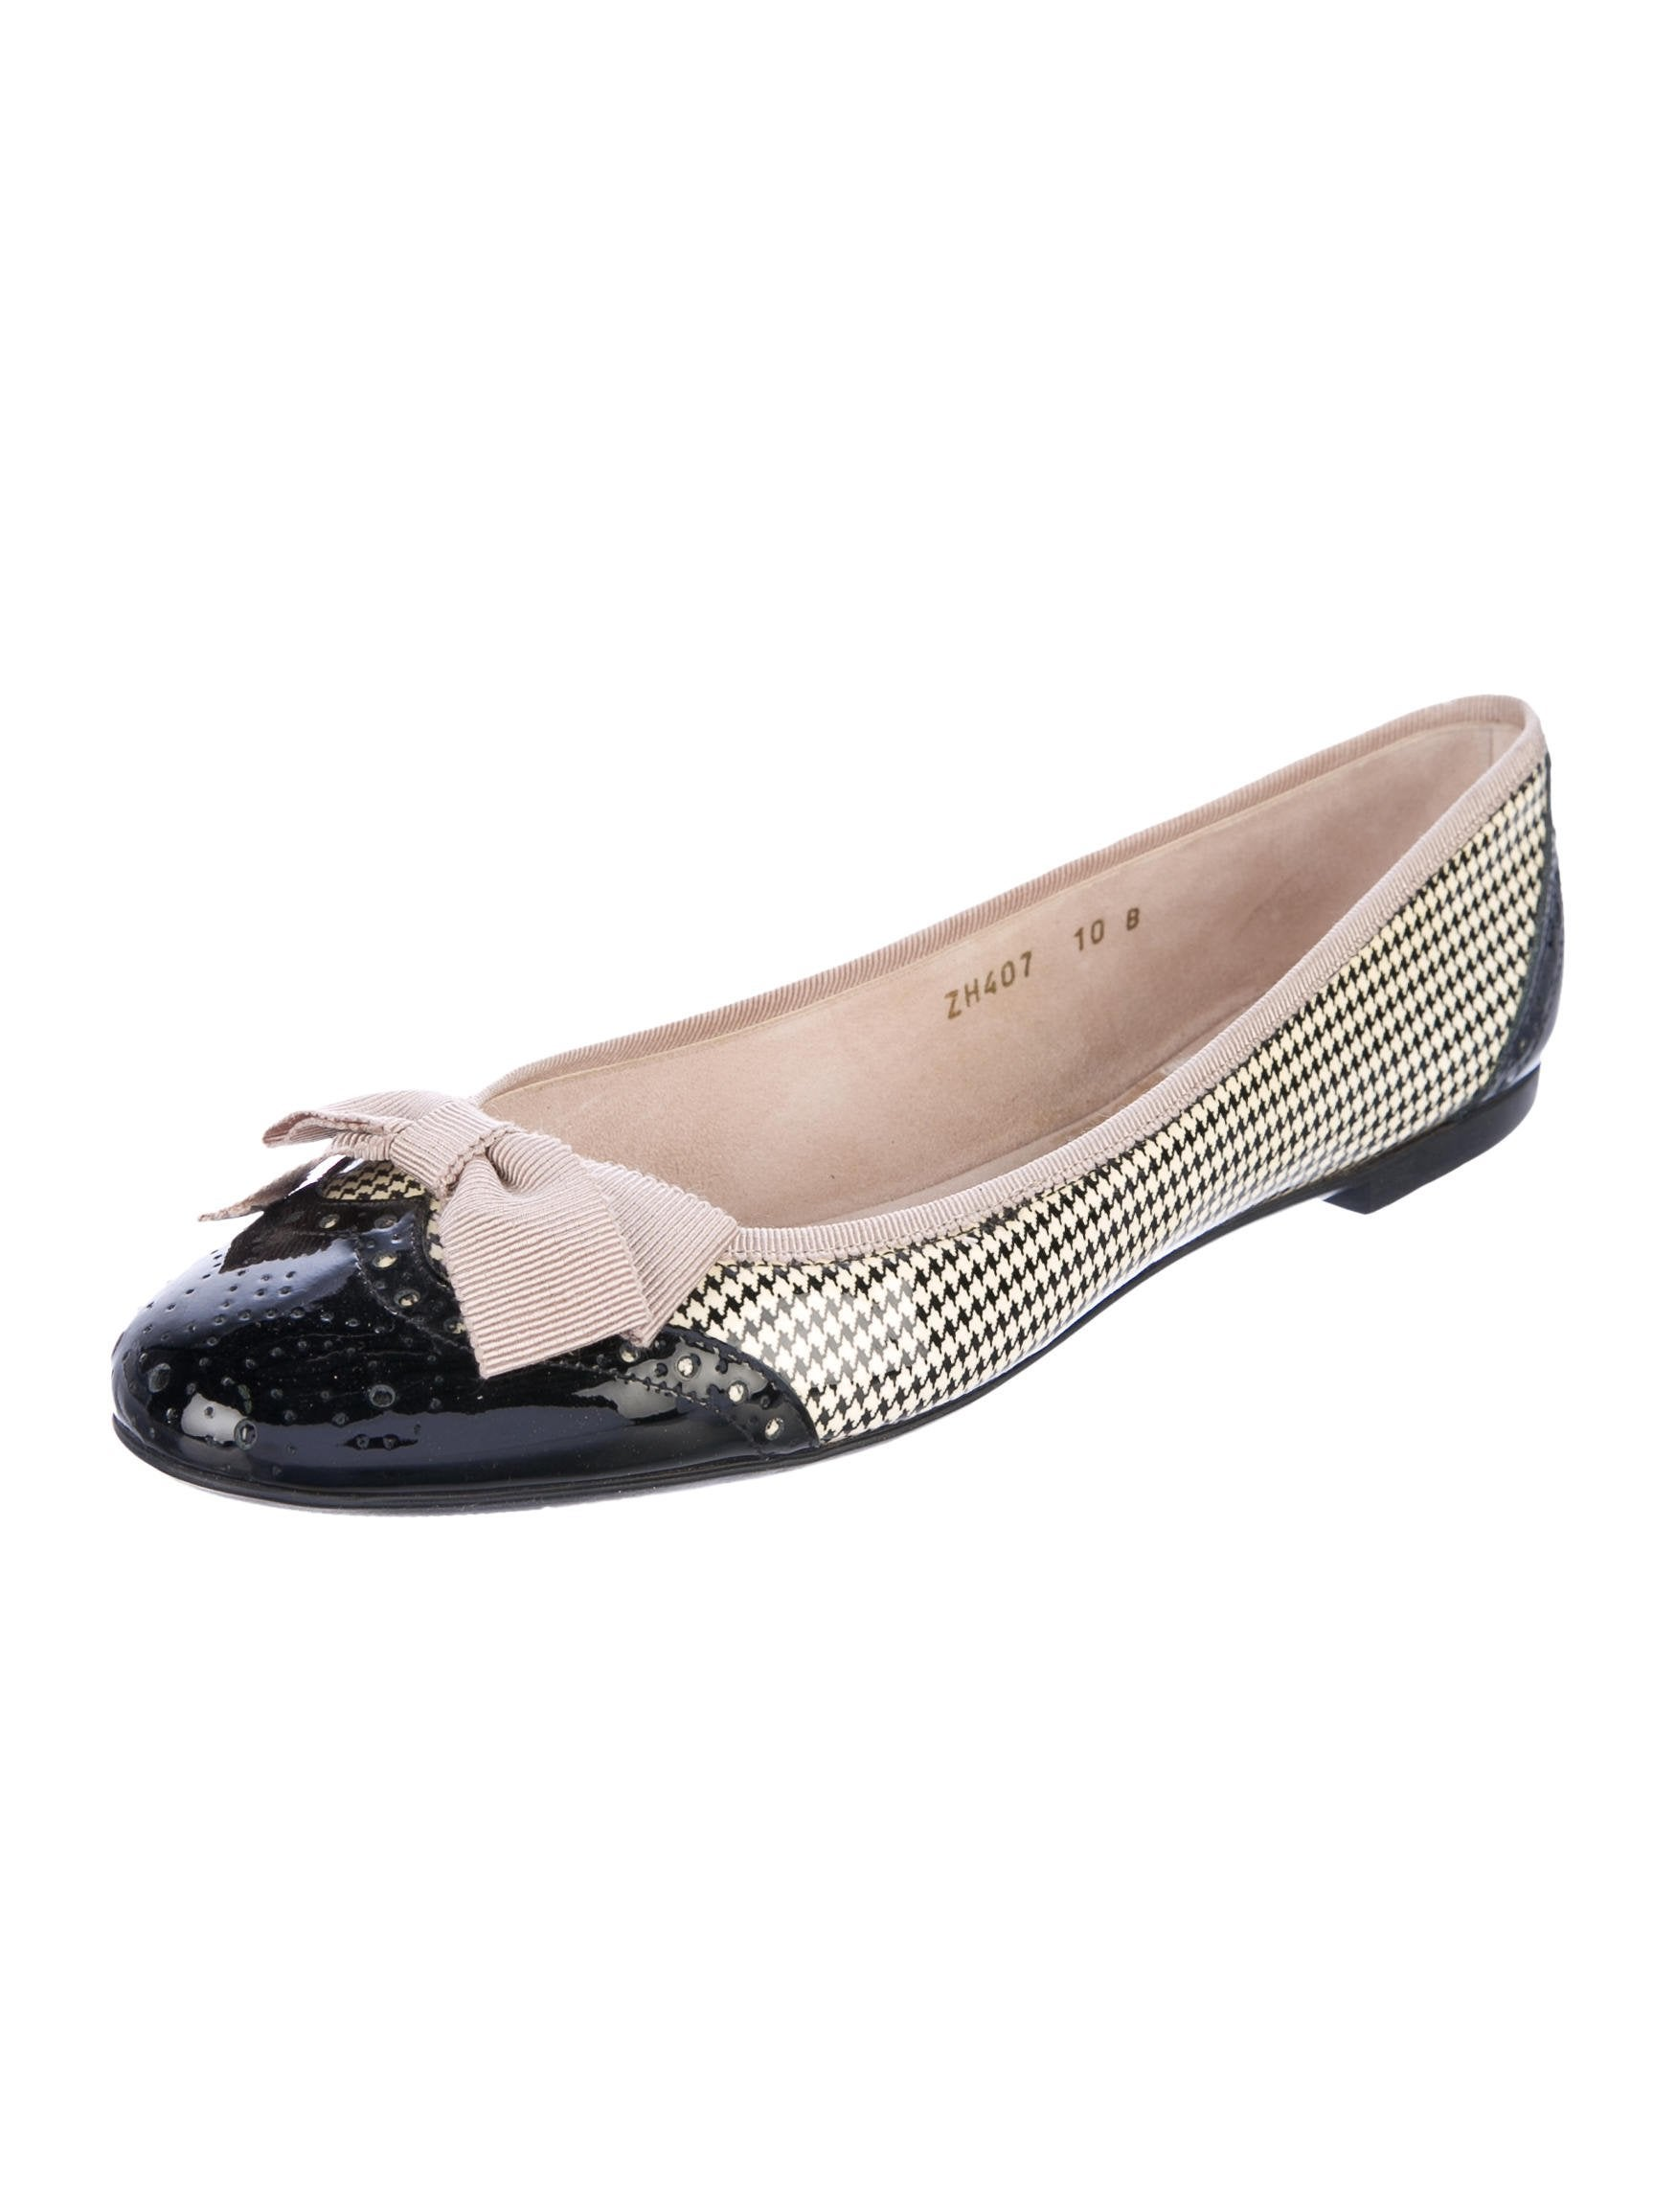 cheap deals Salvatore Ferragamo Houndstooth Brogue Flats clearance visit discount affordable official site cheap price Z6TJgjImGb